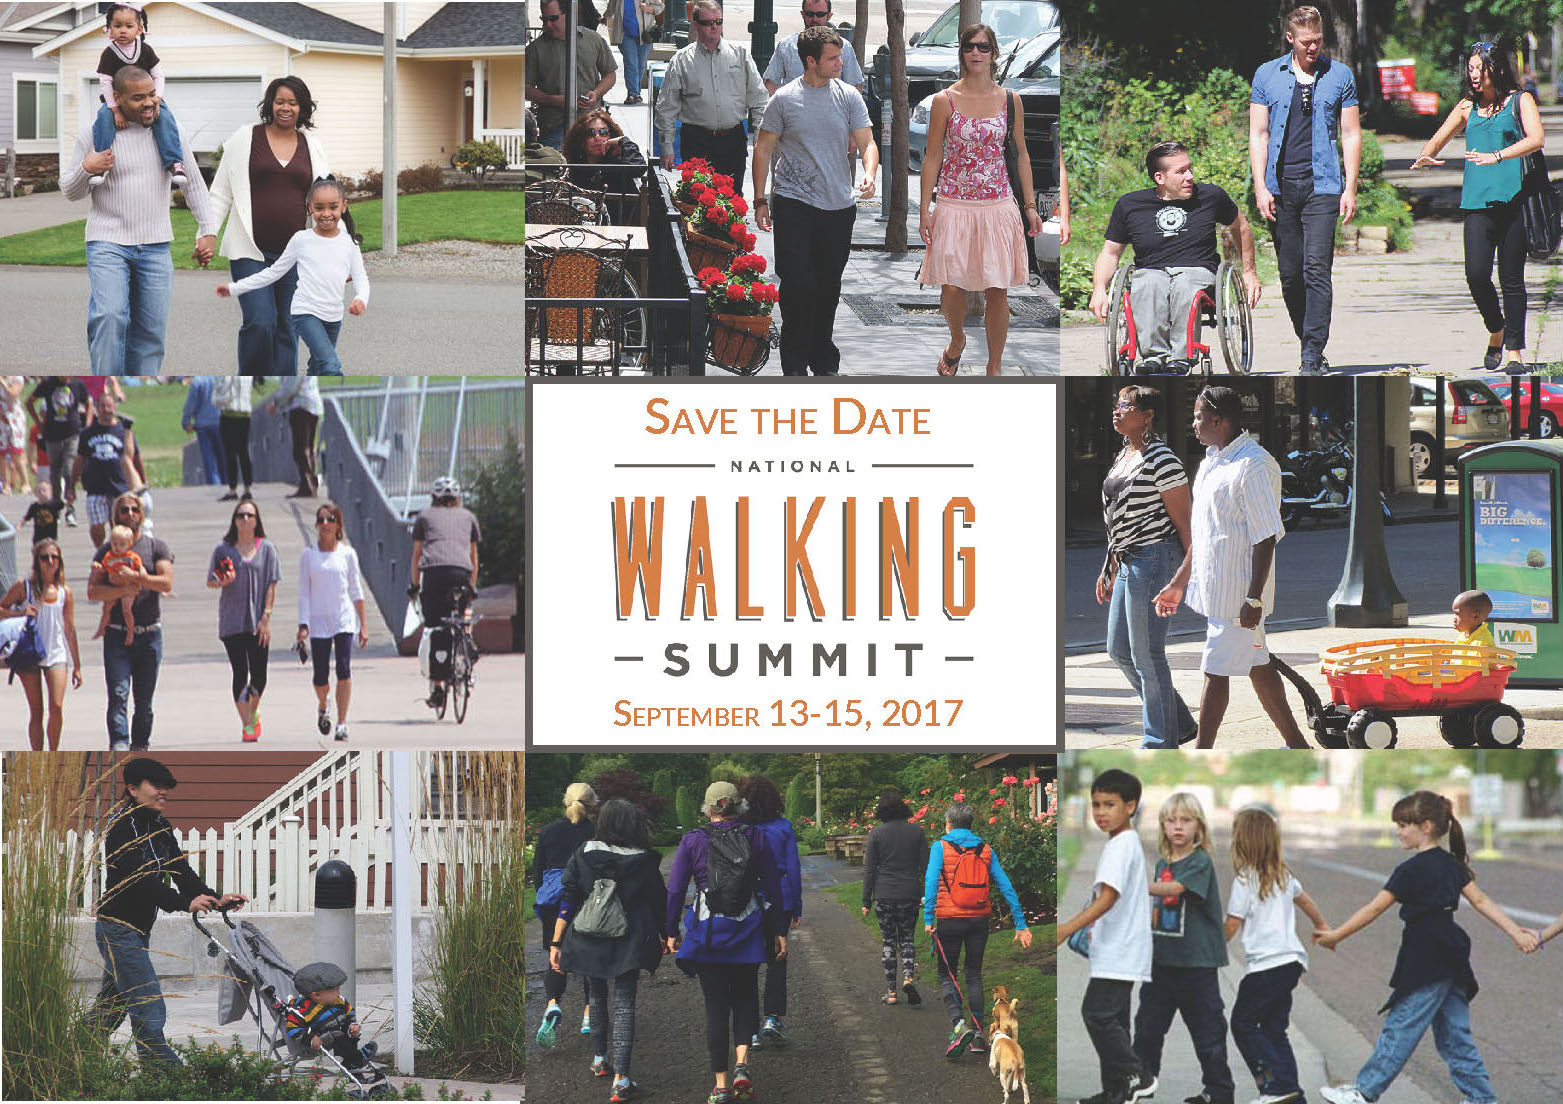 National Walking Summit Call for Proposals